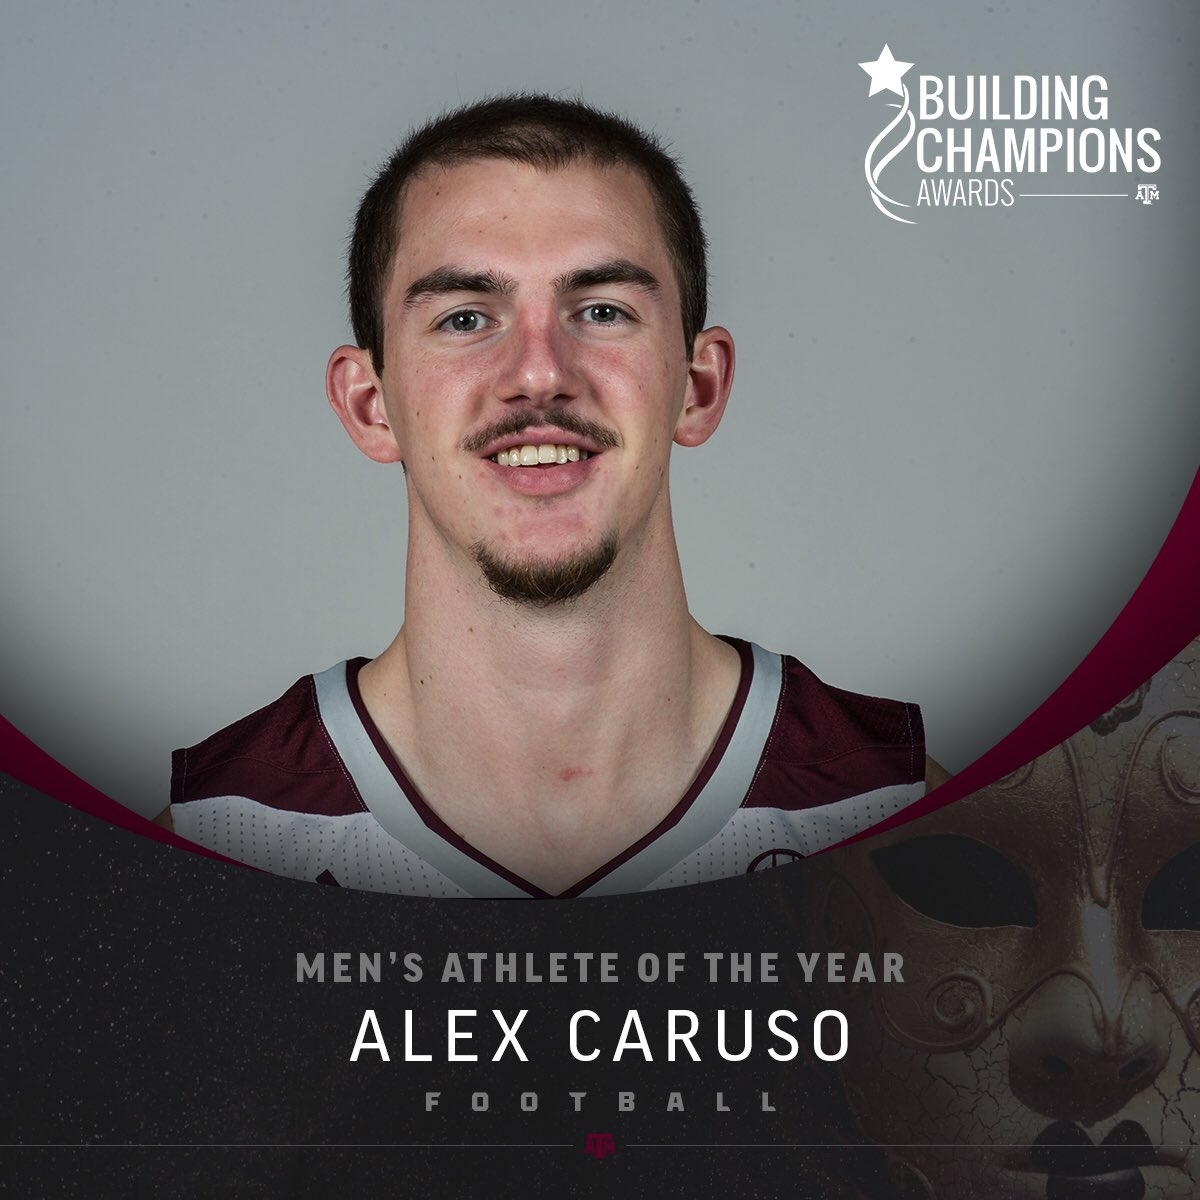 "Texas A&M Athletics on Twitter: ""Congrats Alex Caruso, the male winner of the 2016 Athlete of the Year Award! #12thMan #BCAs2016"